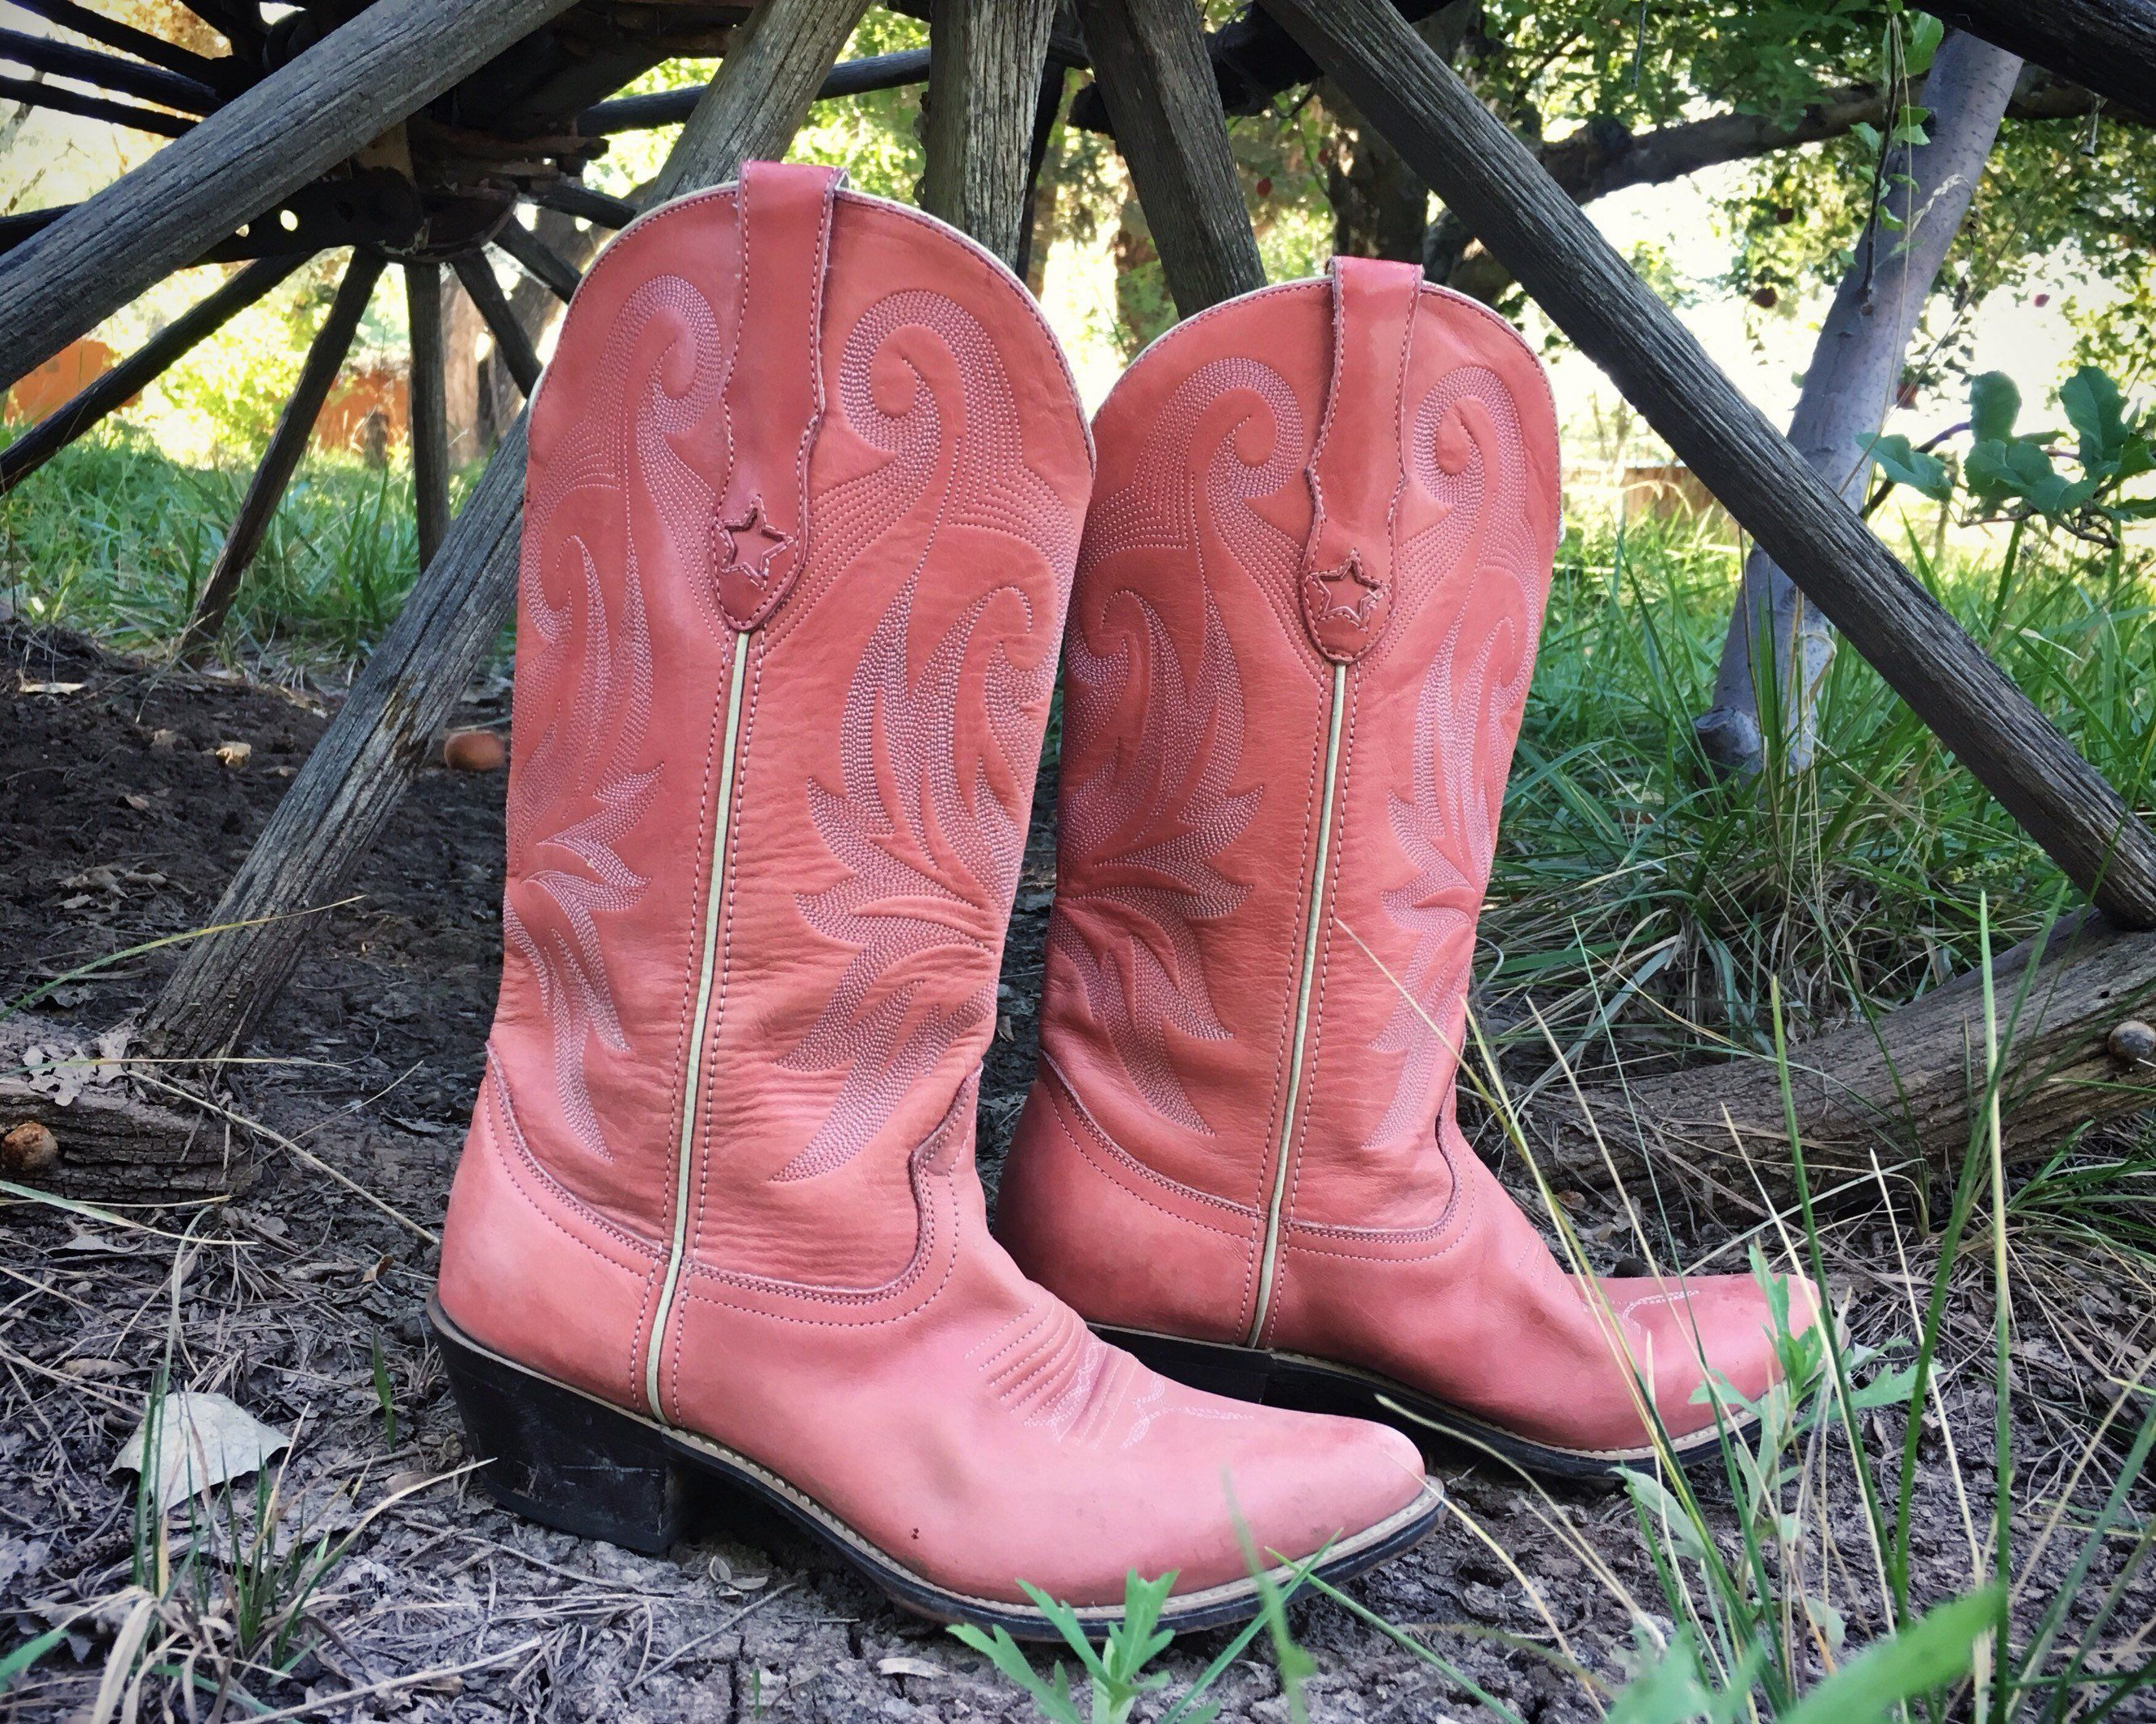 List of the Best Cowboy Boots for Women - 2016 Best ...  |Cowboy Boots With Colored Tops